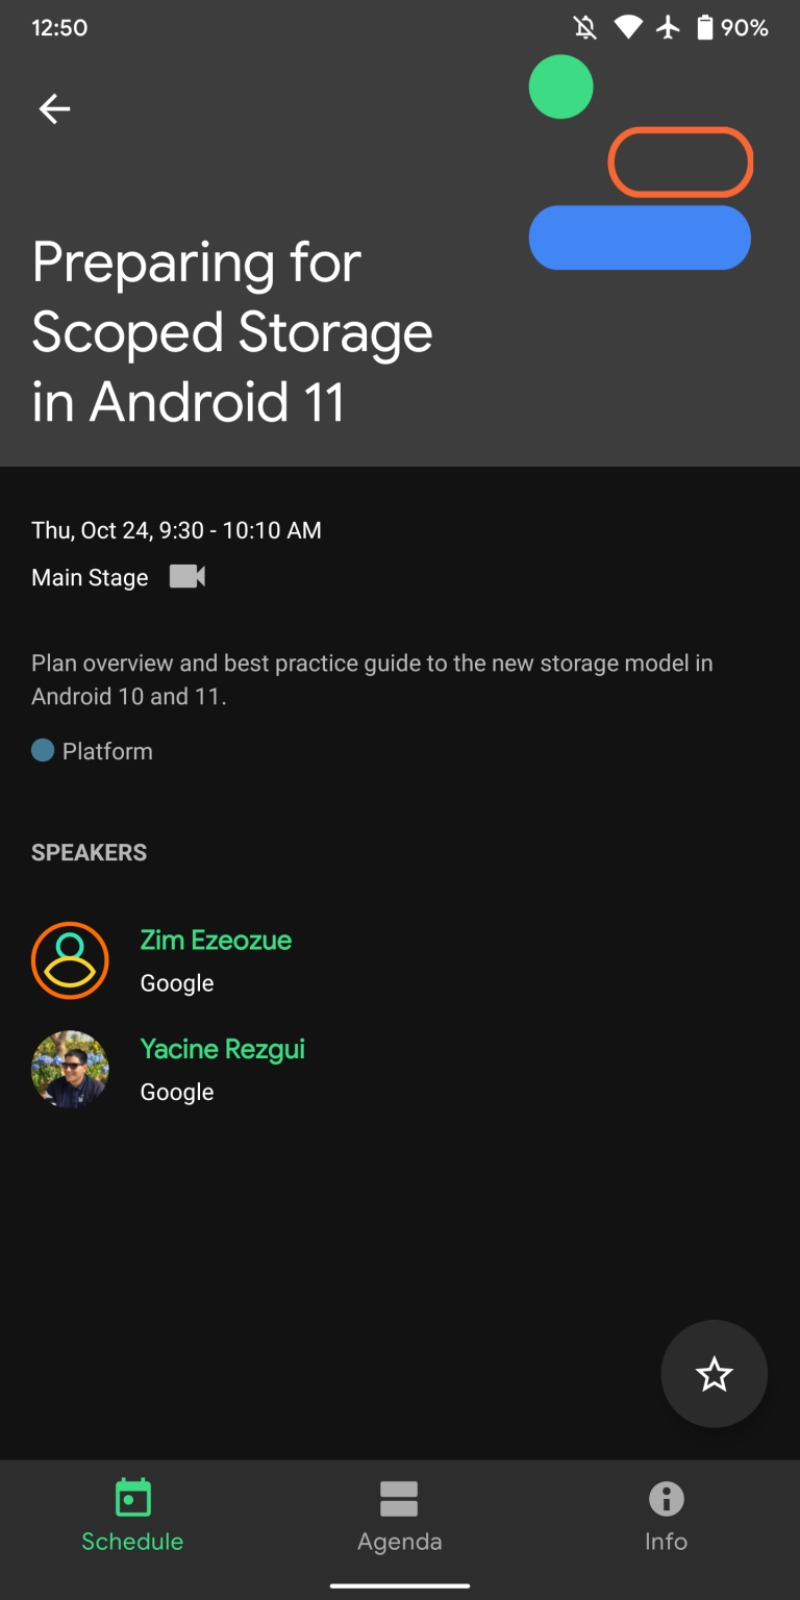 Android 11 Scoped Storage